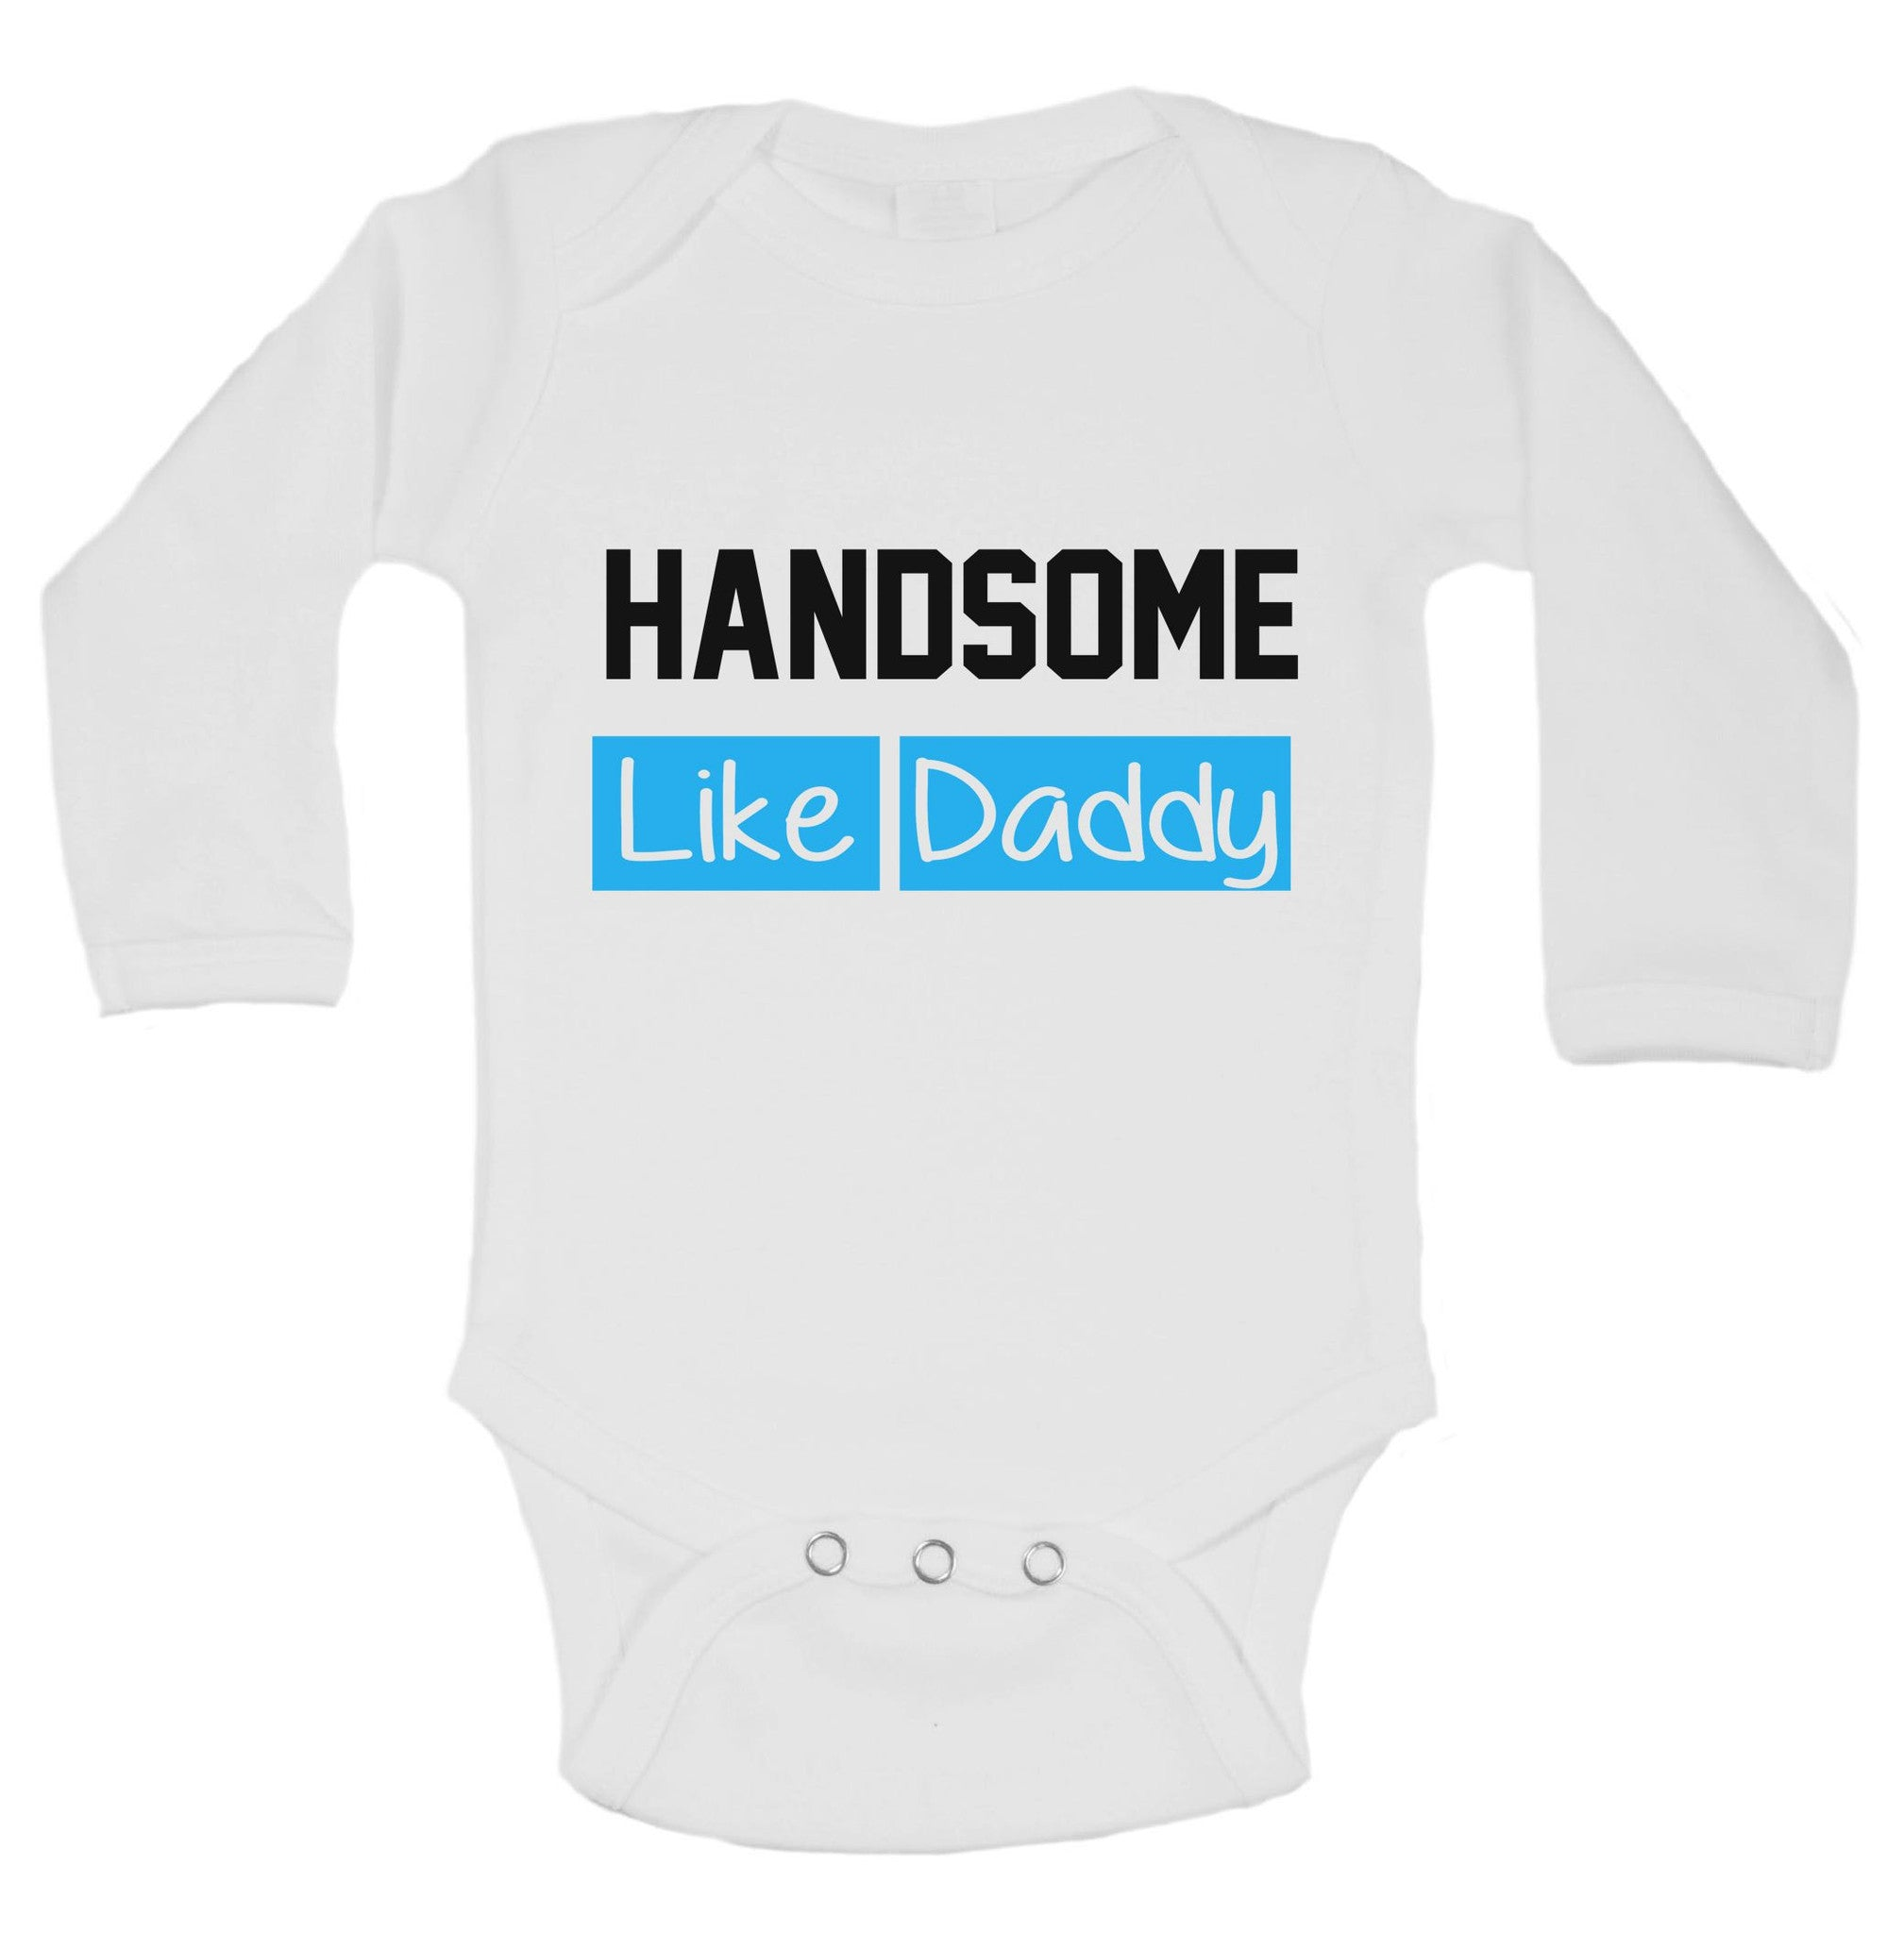 Handsome Like Daddy Funny Kids Onesie - B197 - Funny Shirts Tank Tops Burnouts and Triblends  - 1